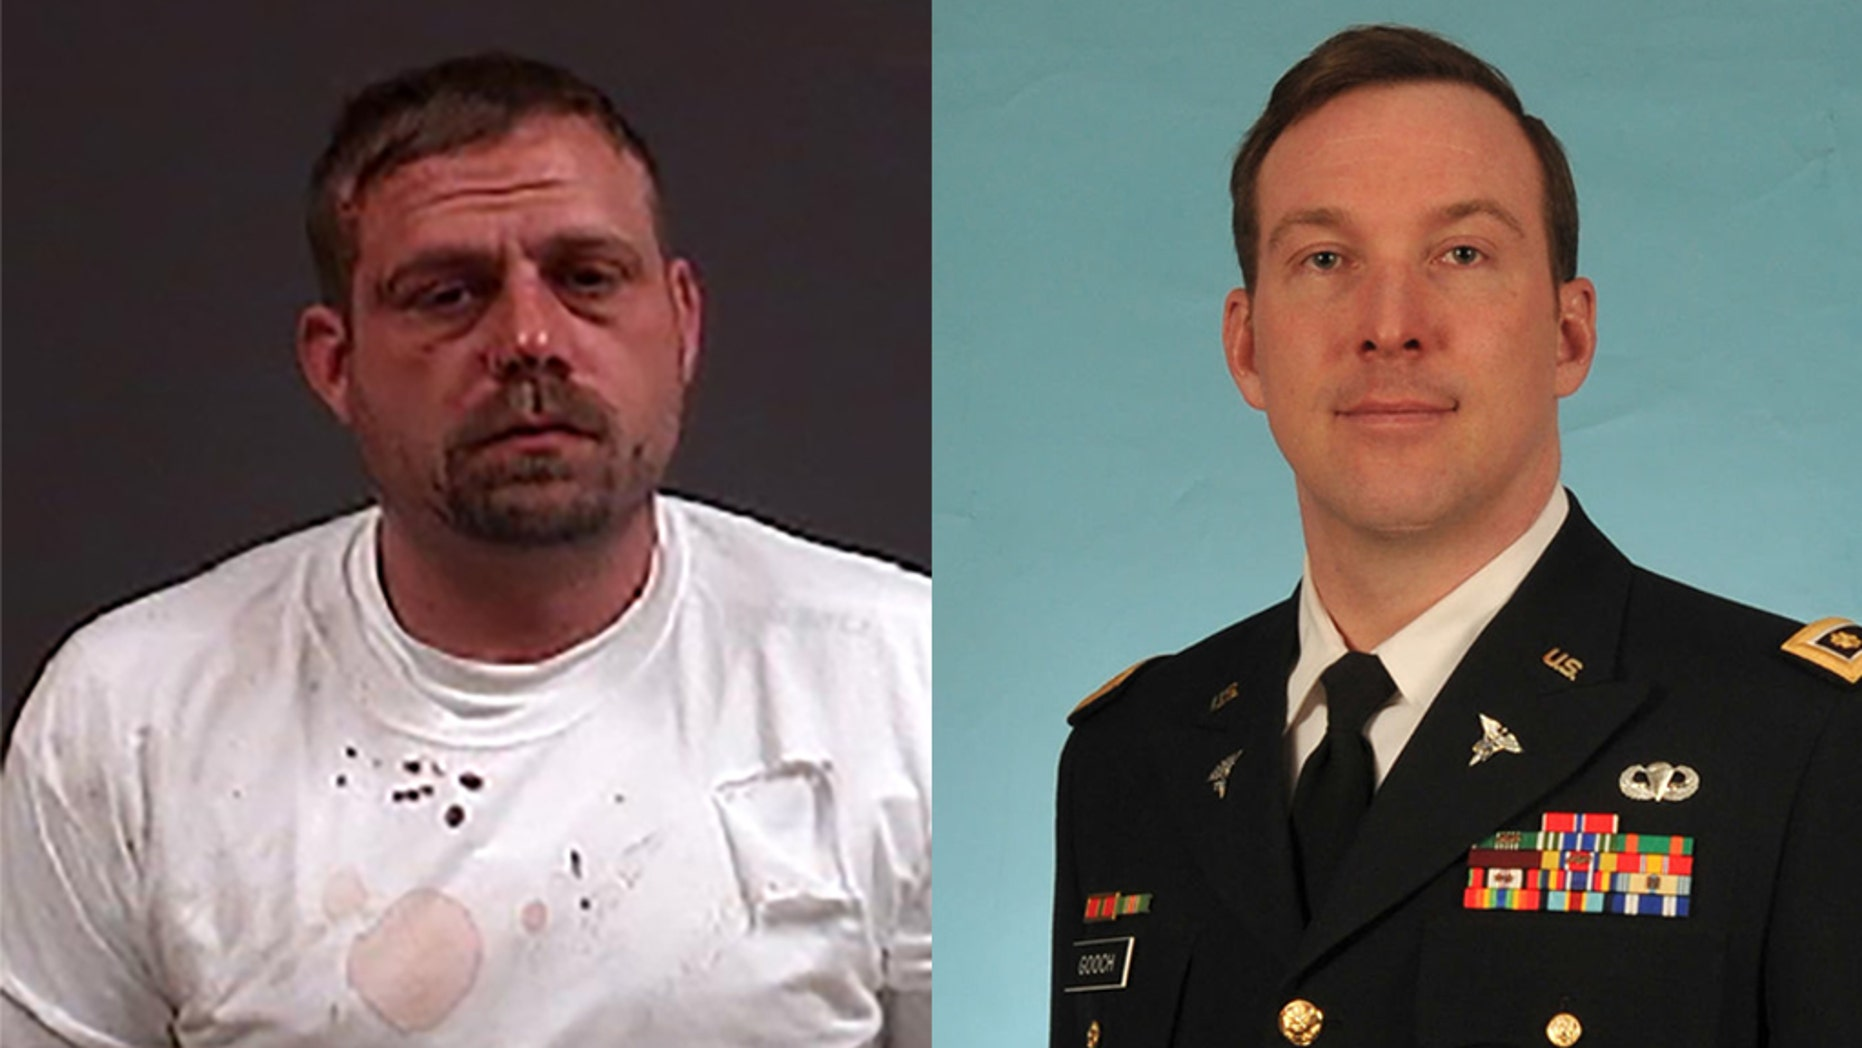 George Buschmann, left, was charged with first-degree murder in the death of Robert Gooch, right.